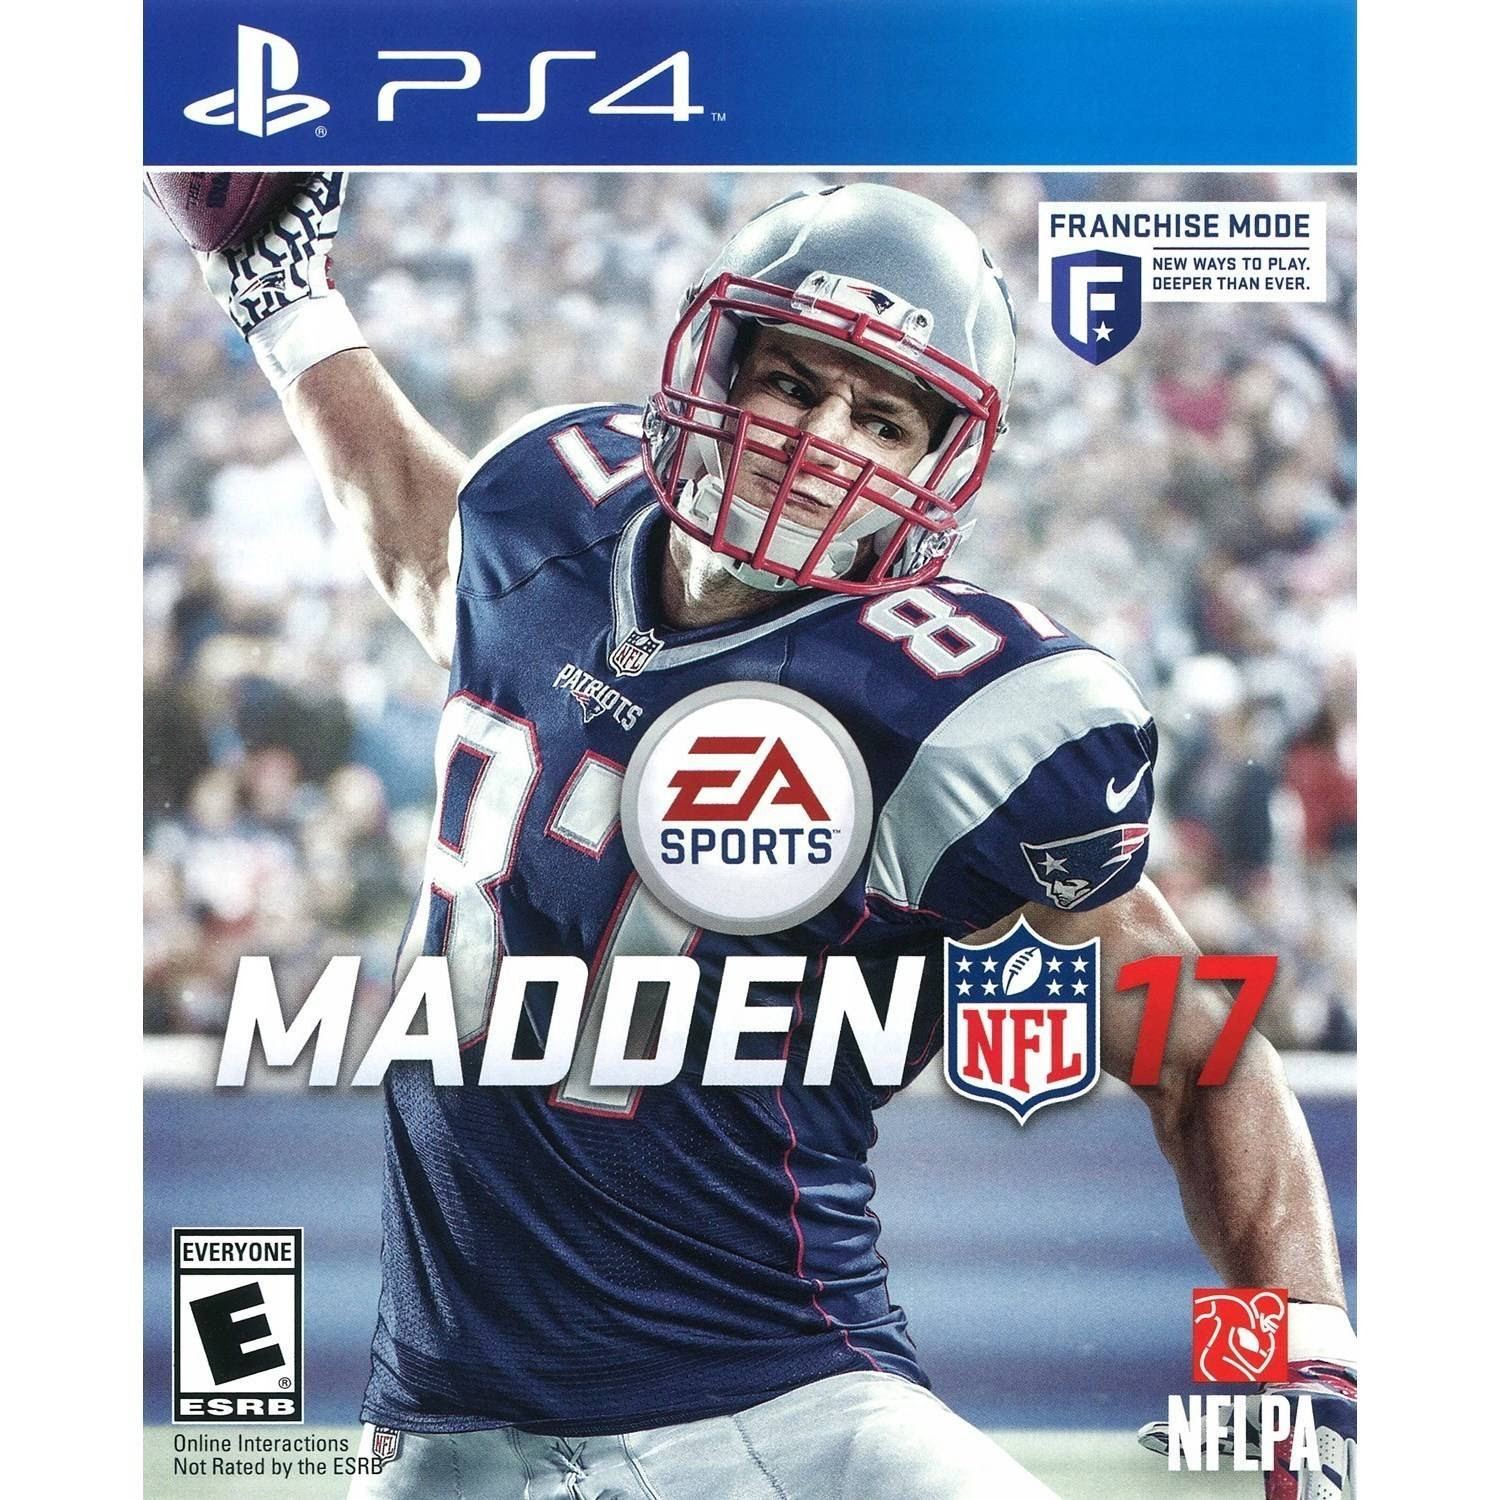 Ps4 Madden NFL 17 English R2 end 6/14/2019 12:29 PM  MYT